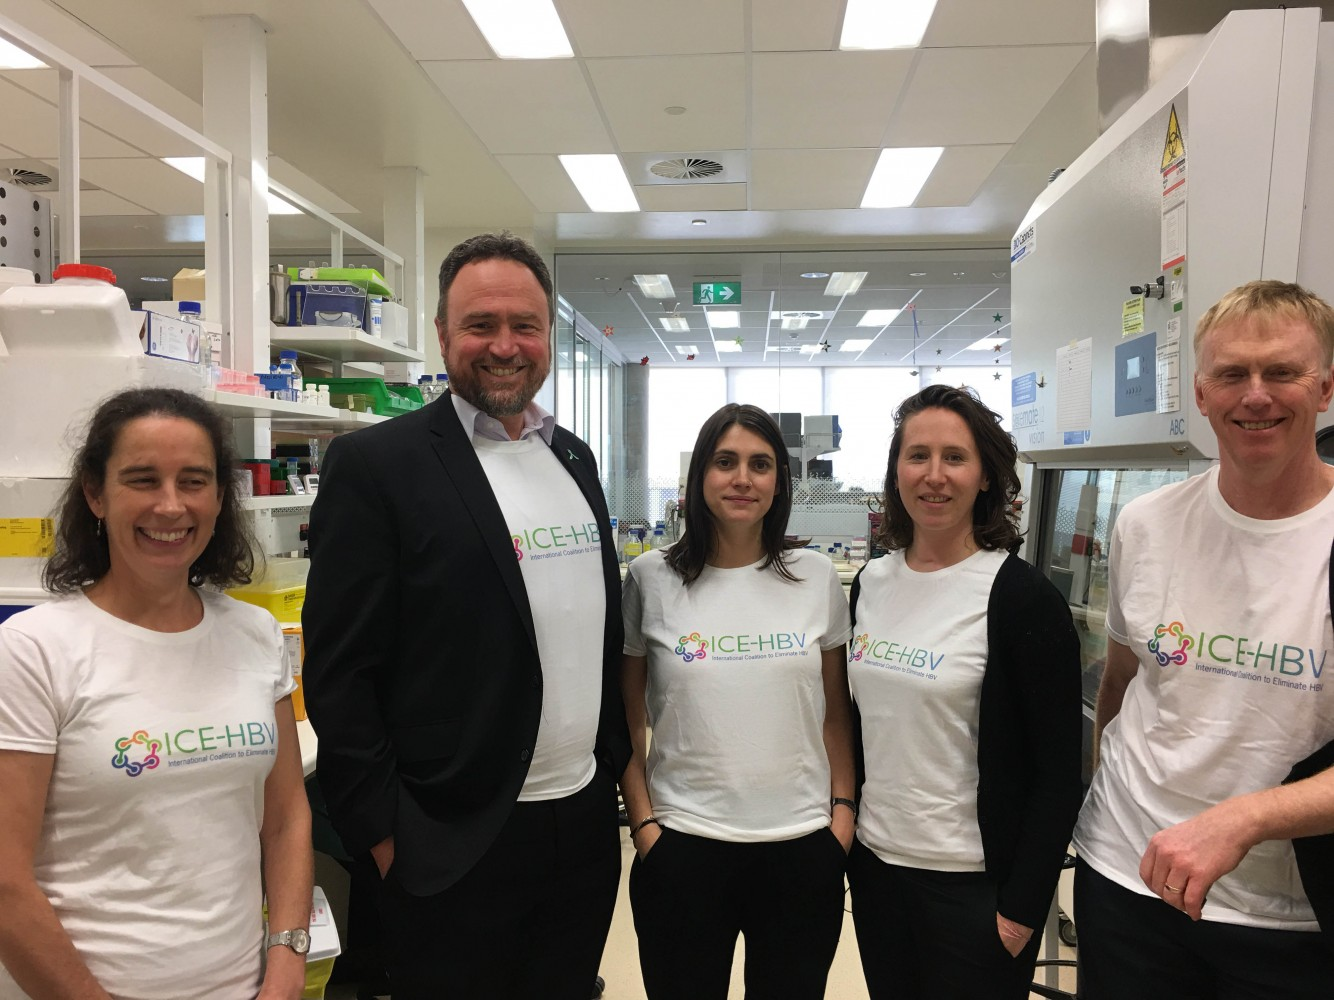 Hepatitis researchers at the Doherty Institute celebrating the launch of ICE-HBV